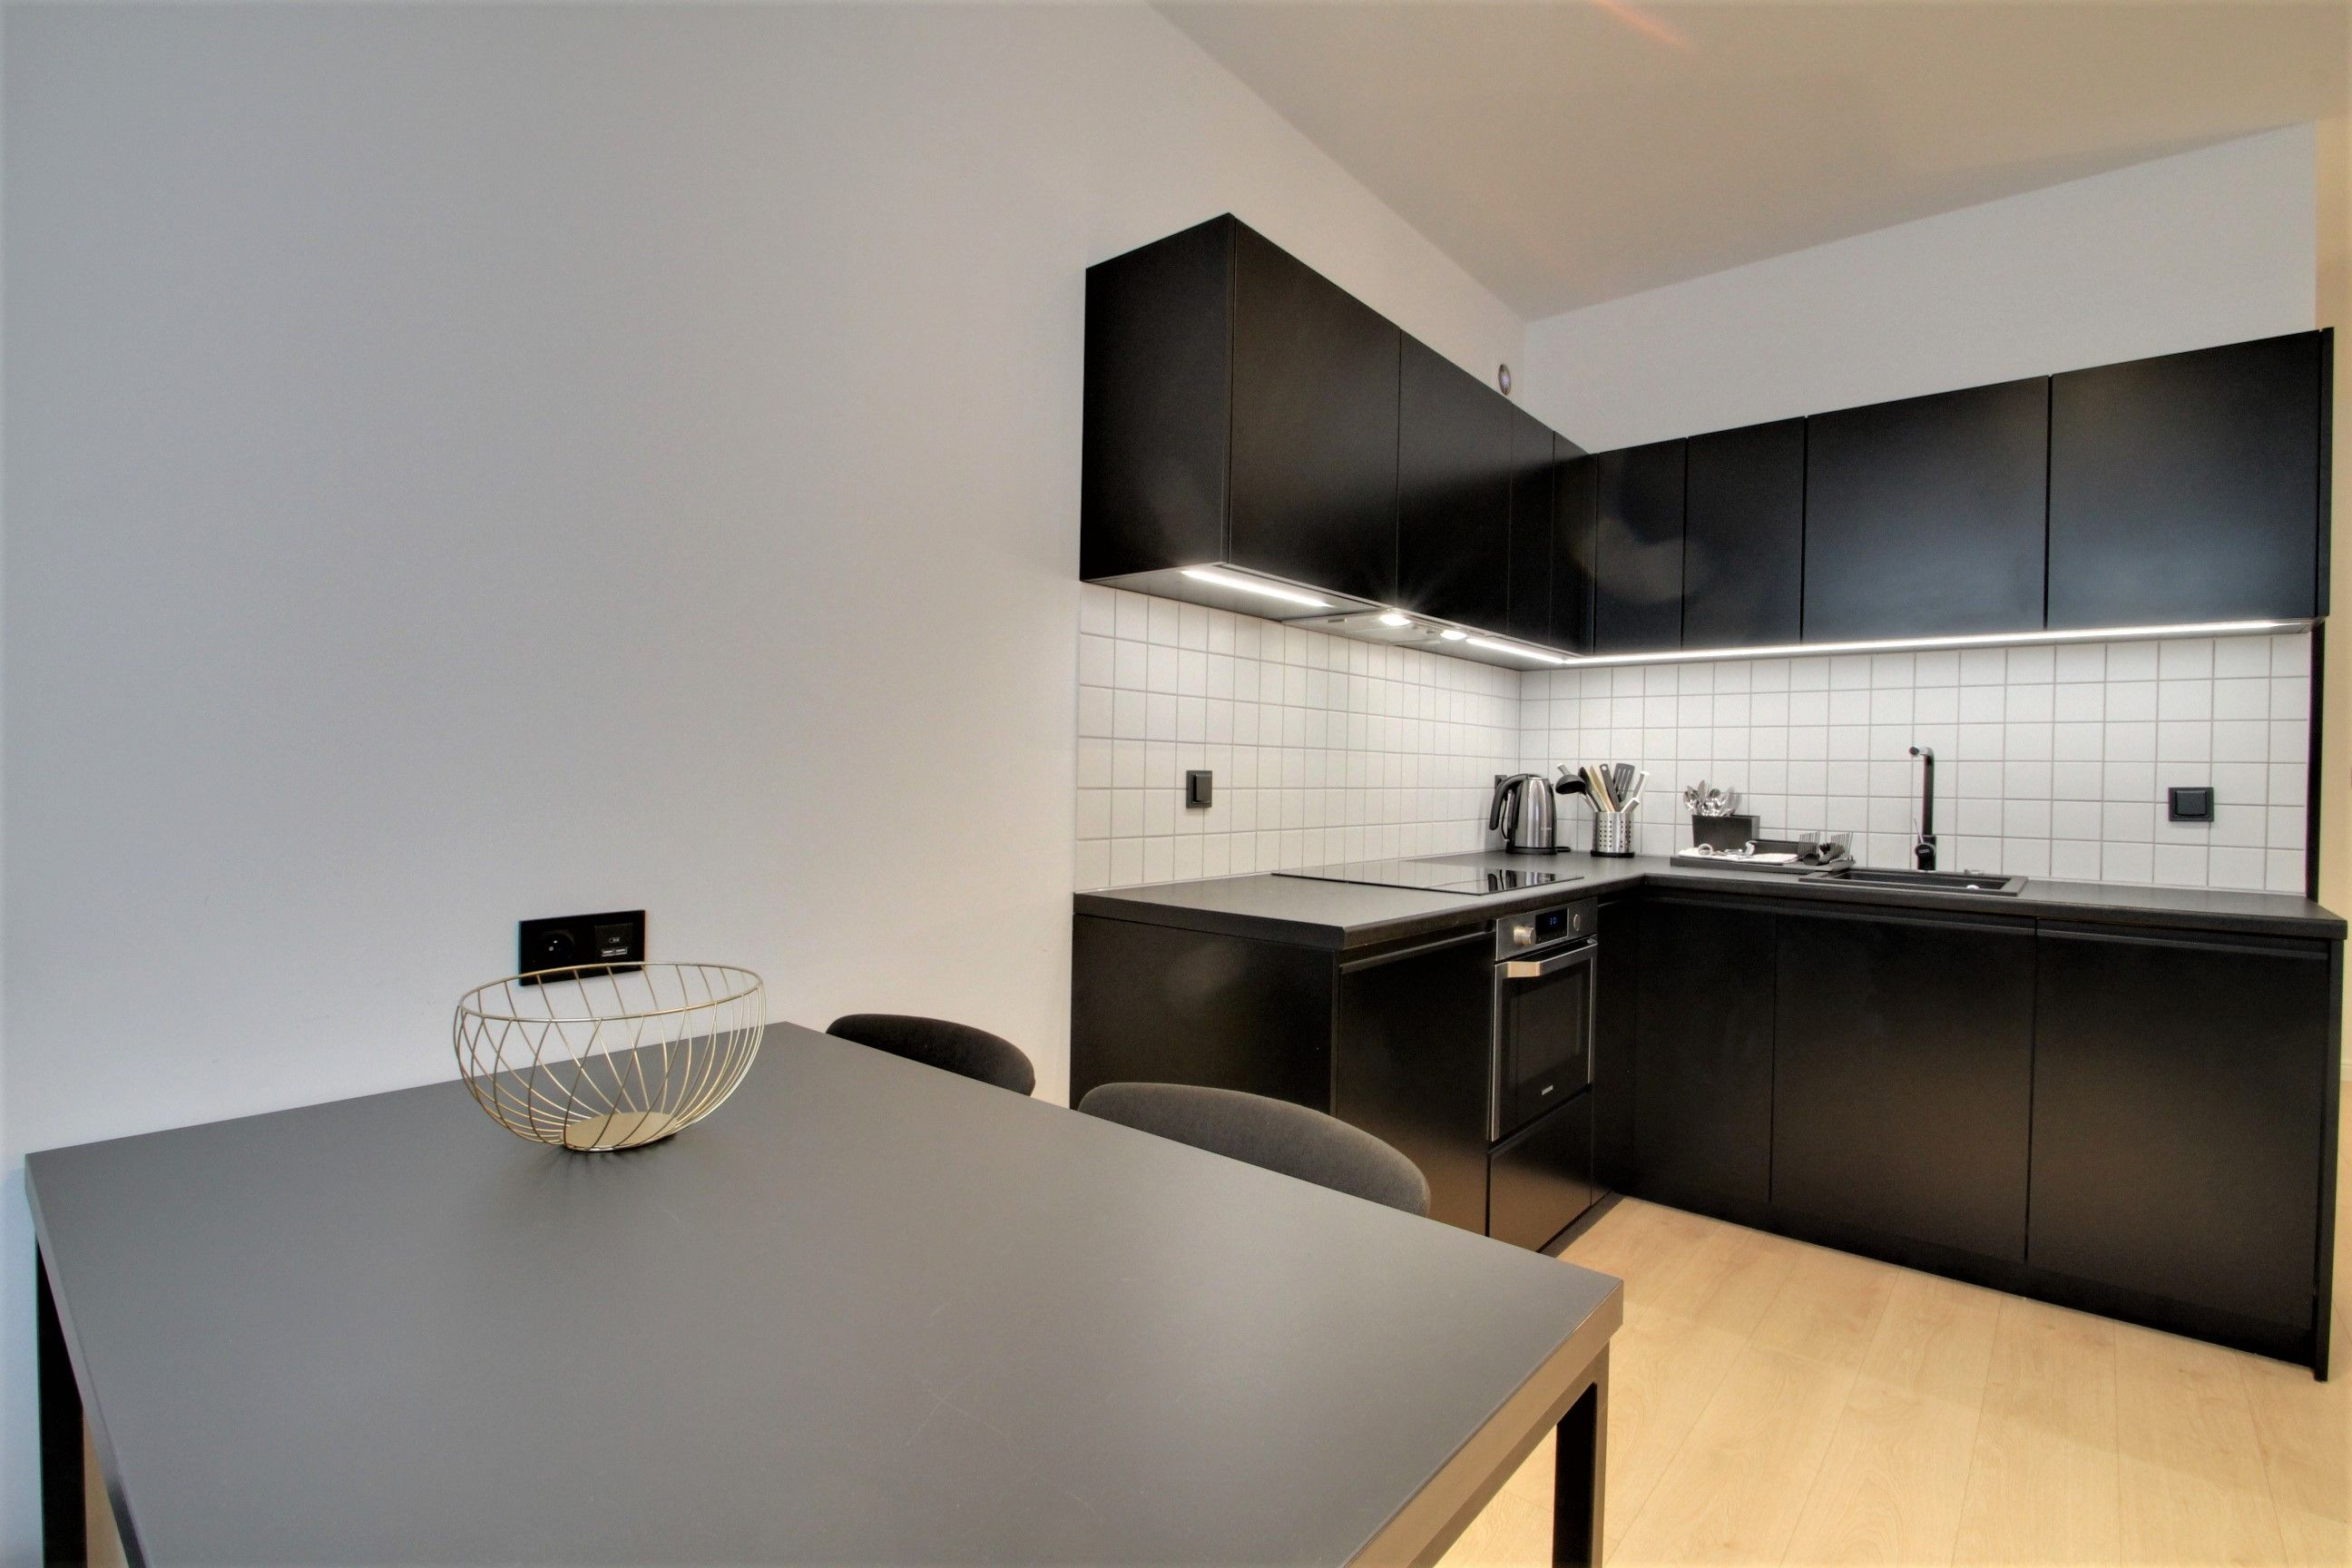 Studio - Large apartment to rent in Warsaw UPR-A-018-2